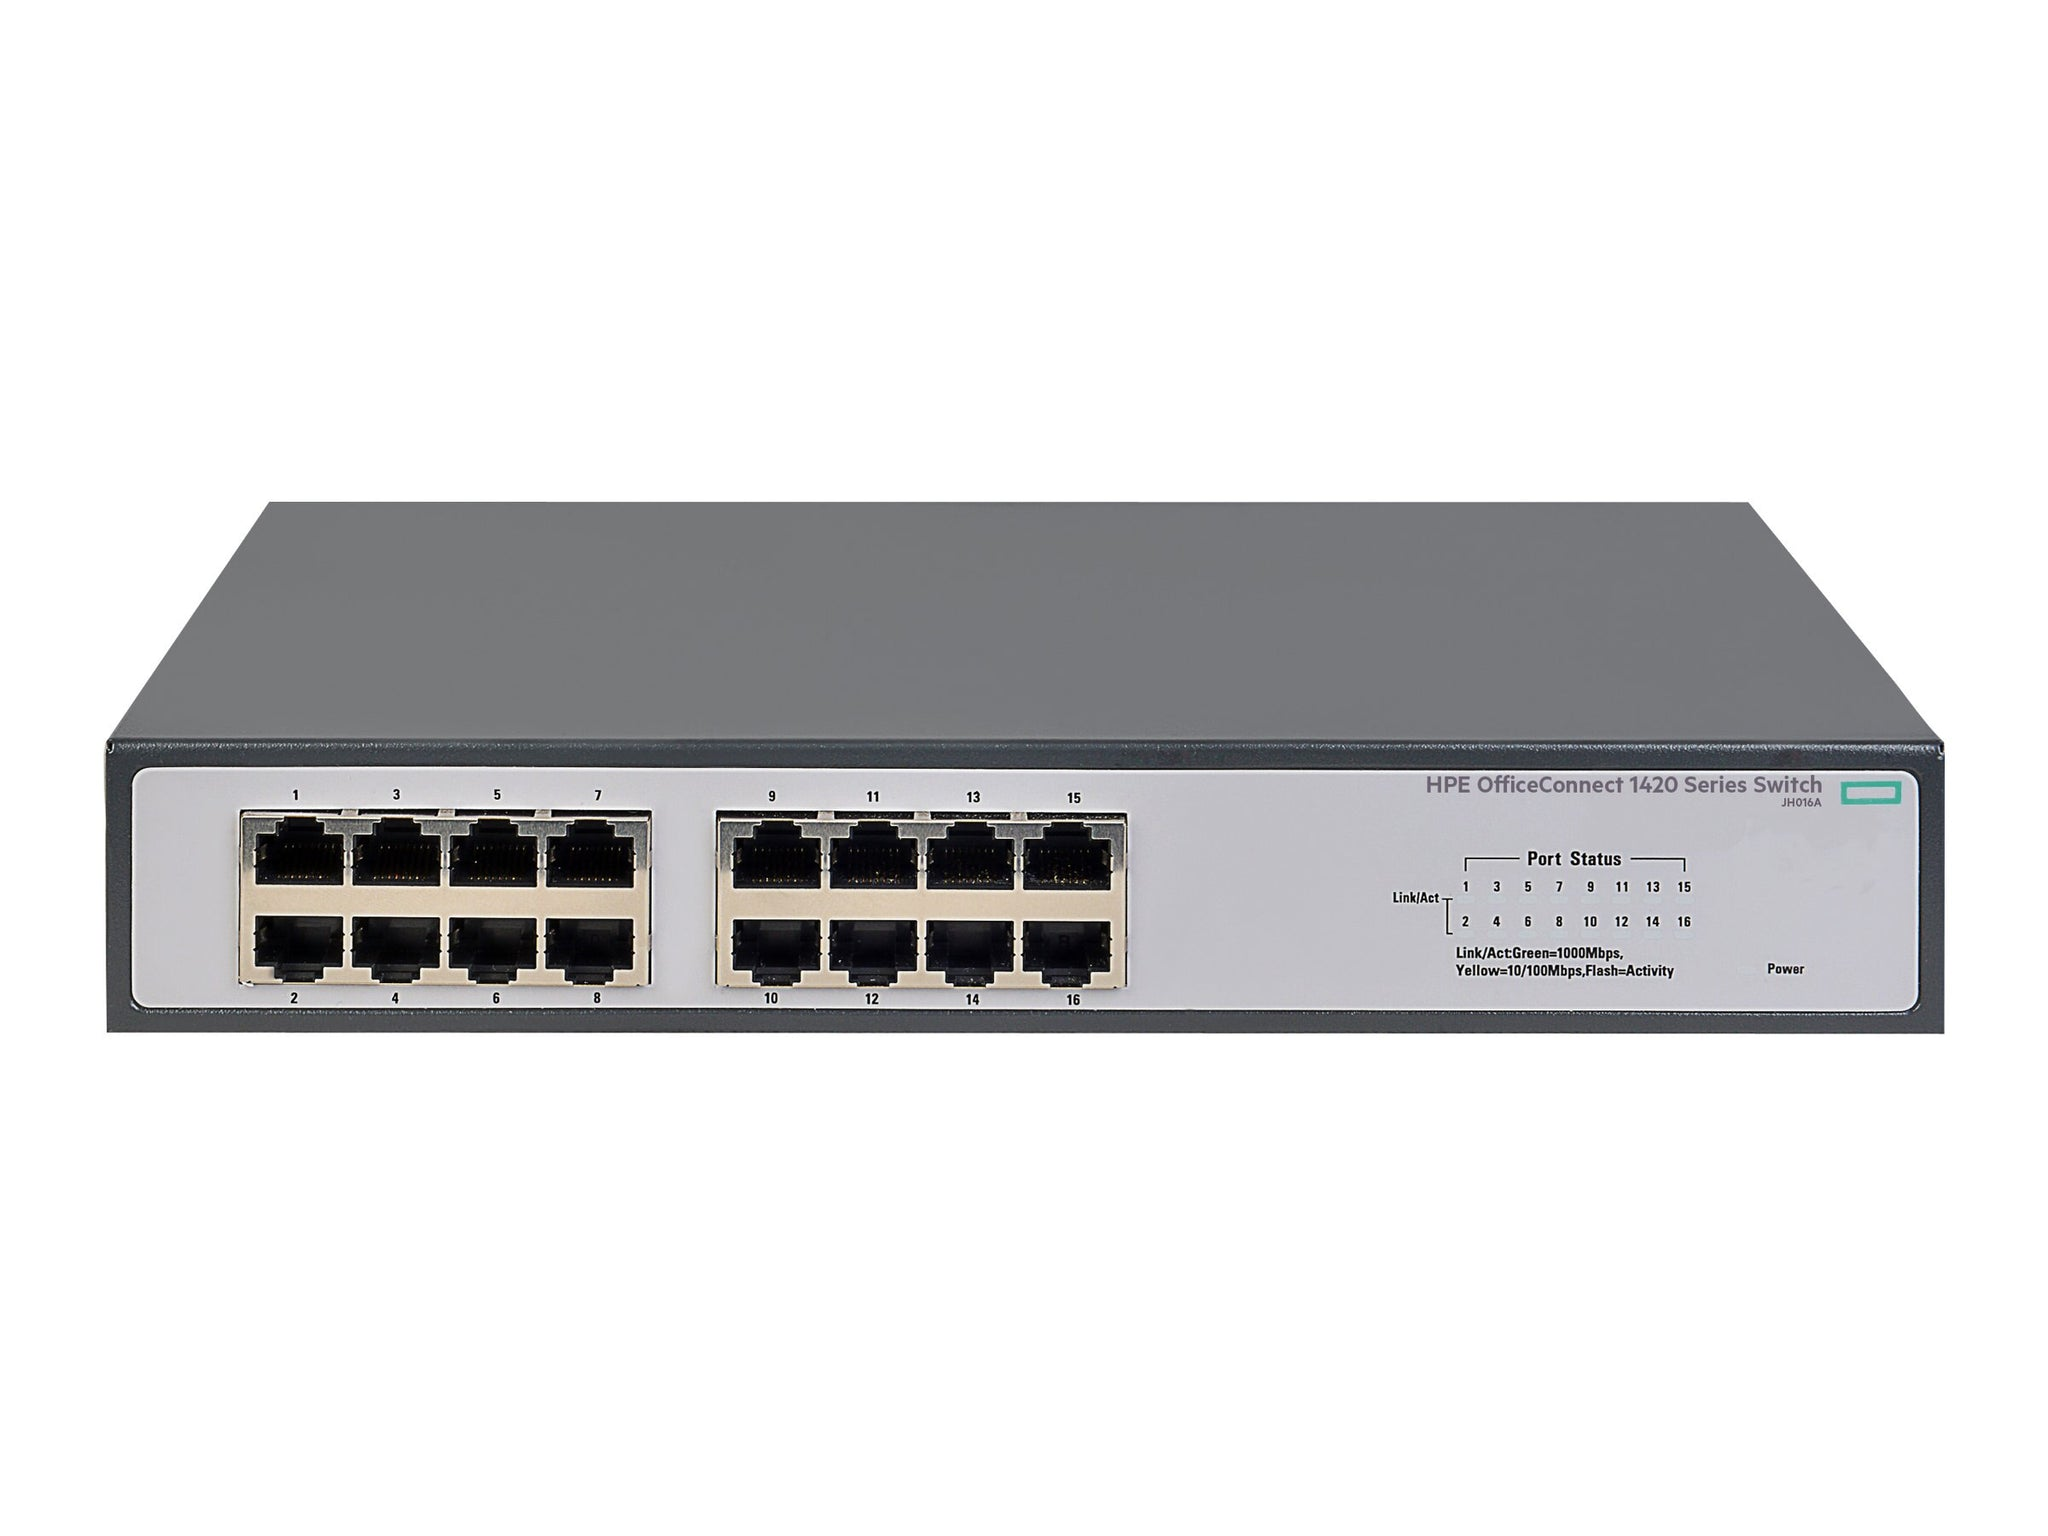 JH016A New HPE  1420-16G Switch - var deals